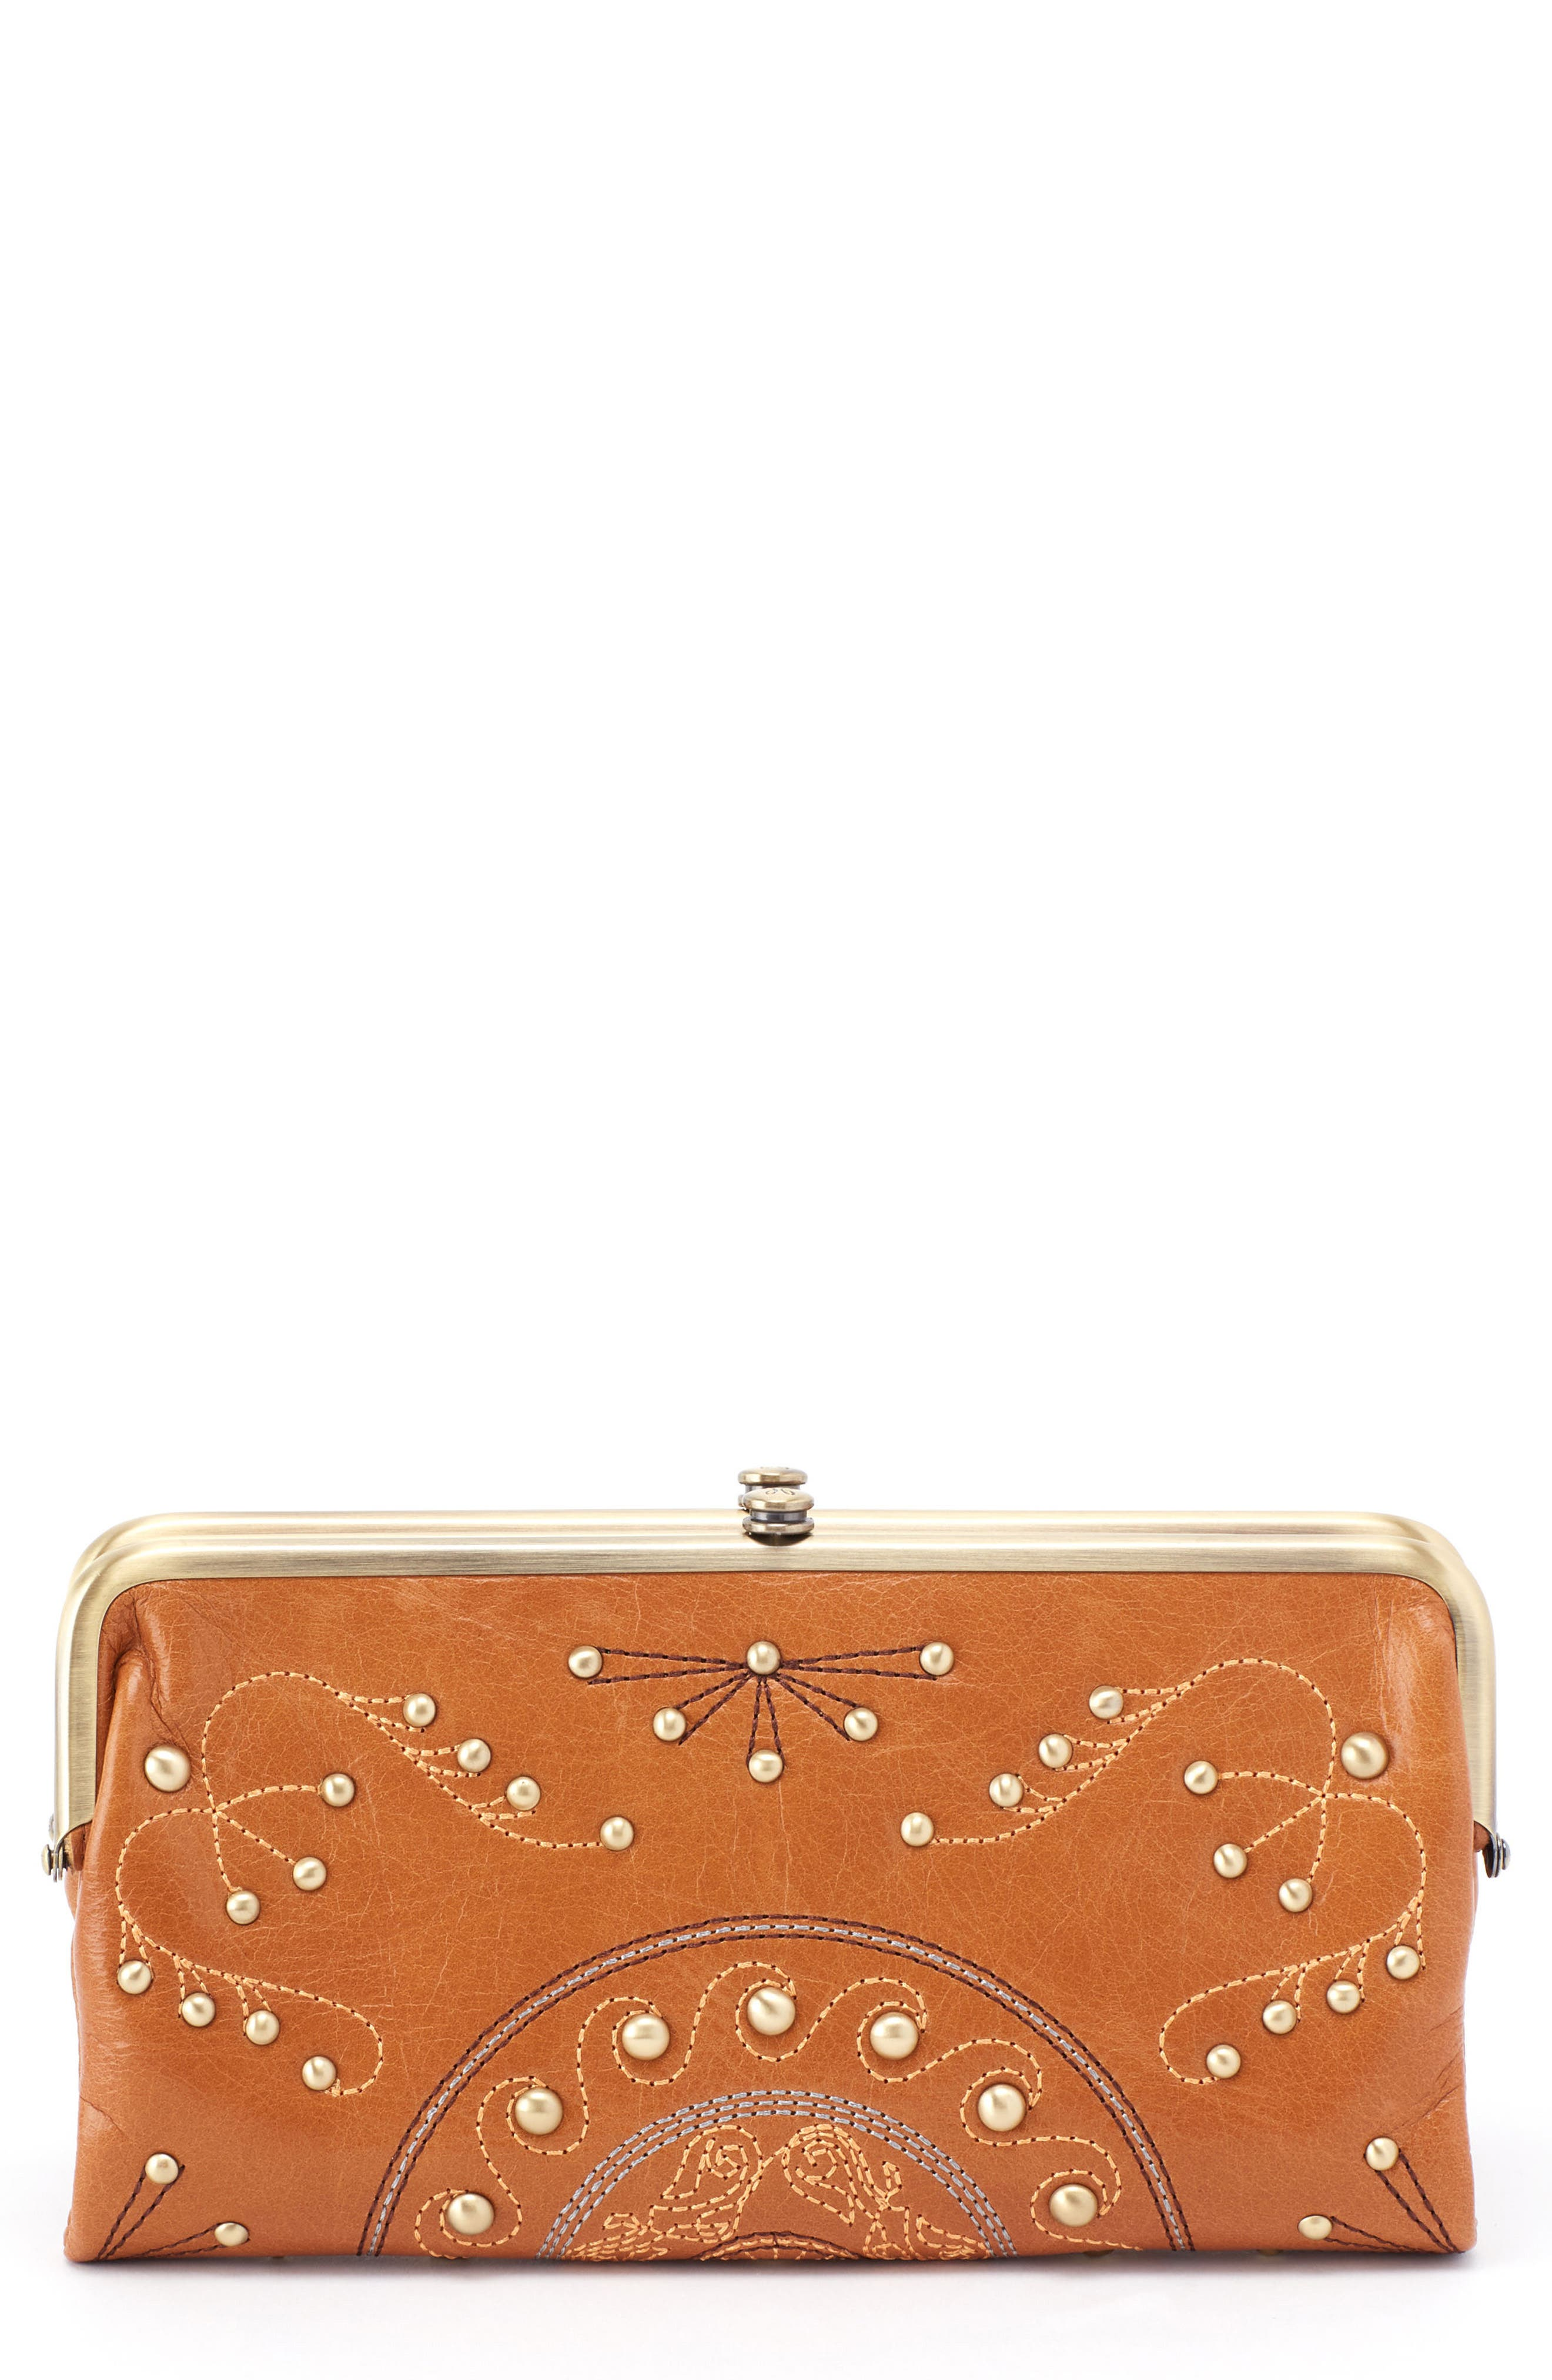 Lauren Studded Leather Wallet,                         Main,                         color, Earth